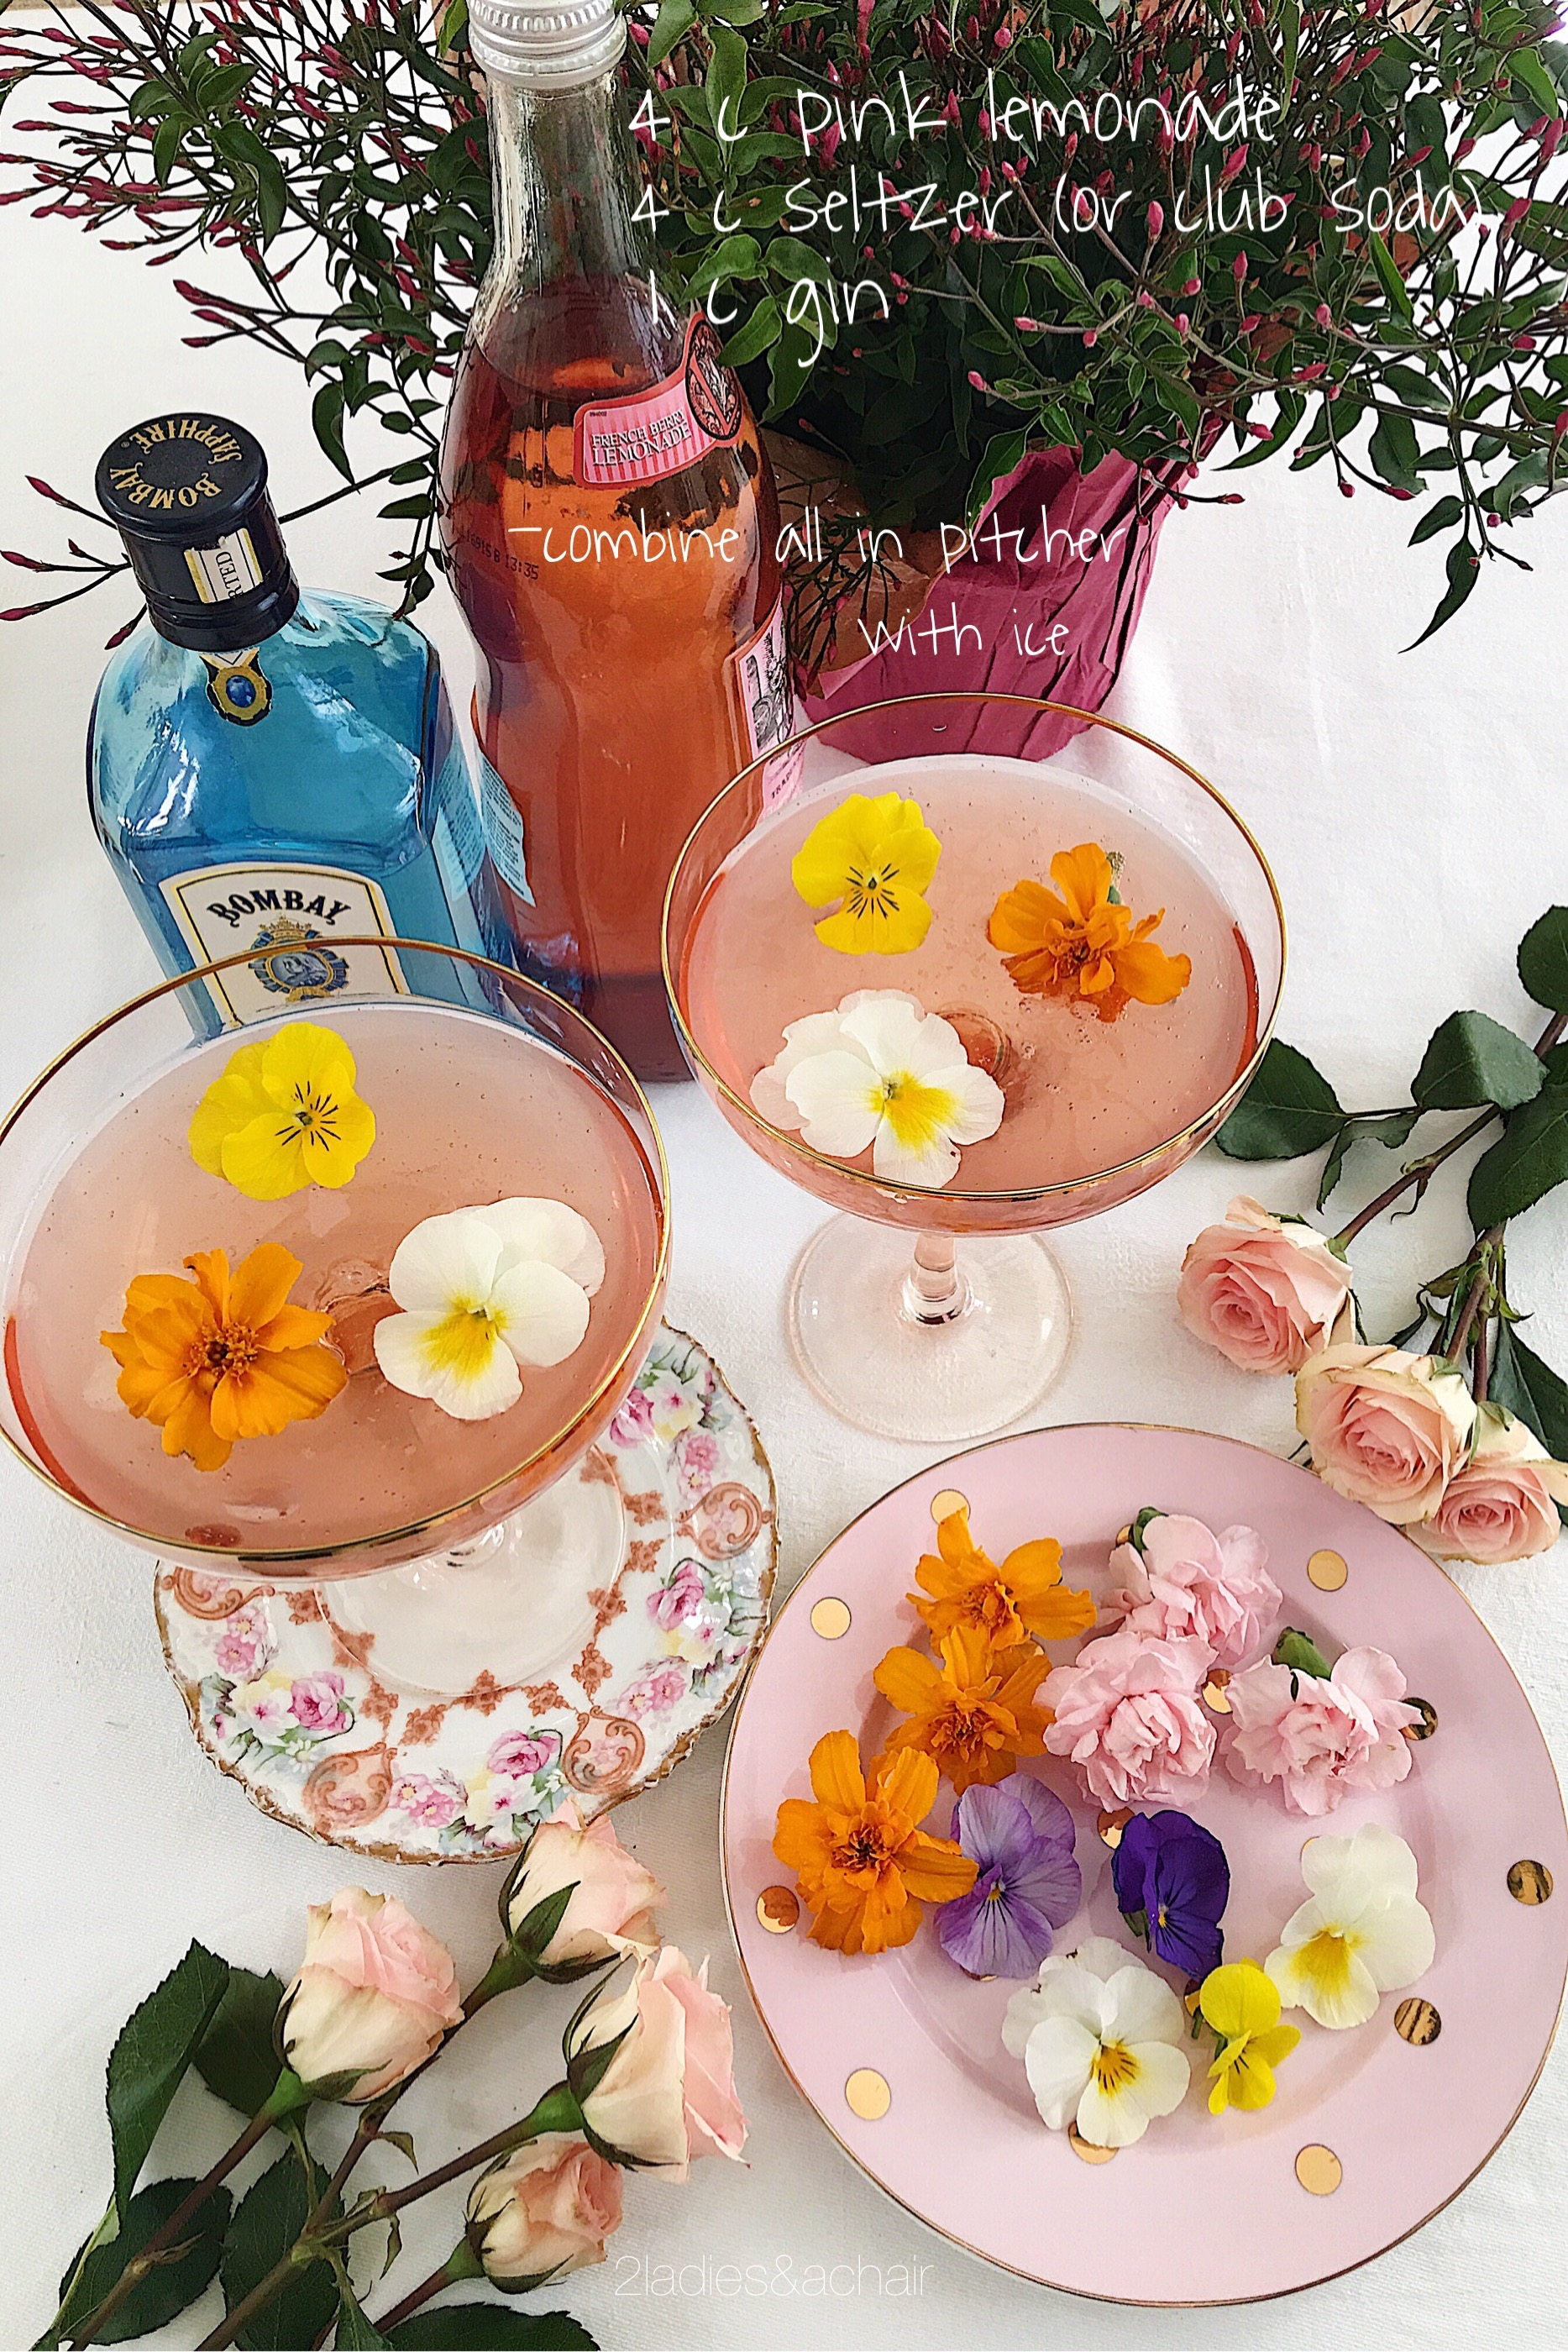 Edible, pesticide free flowers like violas, carnations, marigolds, and nasturtiums are pretty floating on top of punch bowl or individual glasses. Google for more edible flower choices. Add seltzer just before serving.